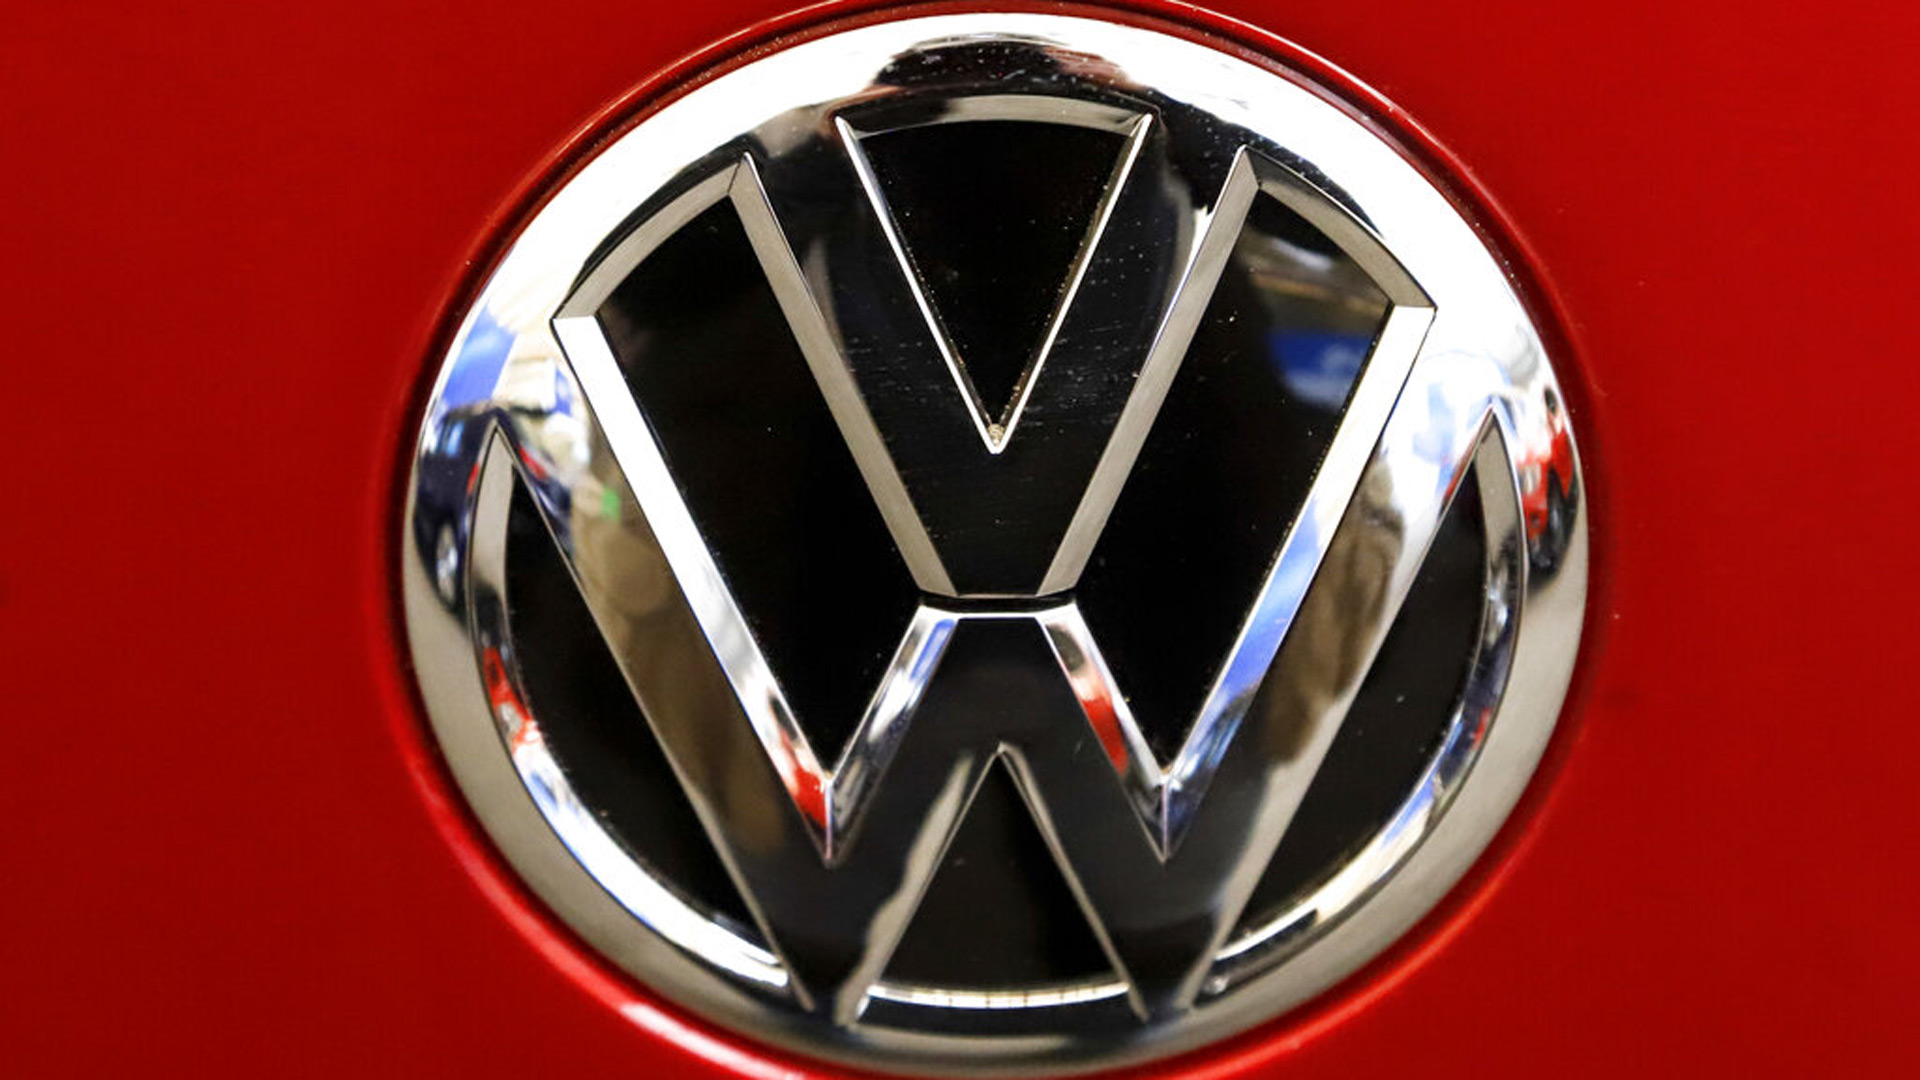 Vw Recalling More Than 218 000 Jettas To Fix Fuel Leaks That Can Cause Fires Ktla